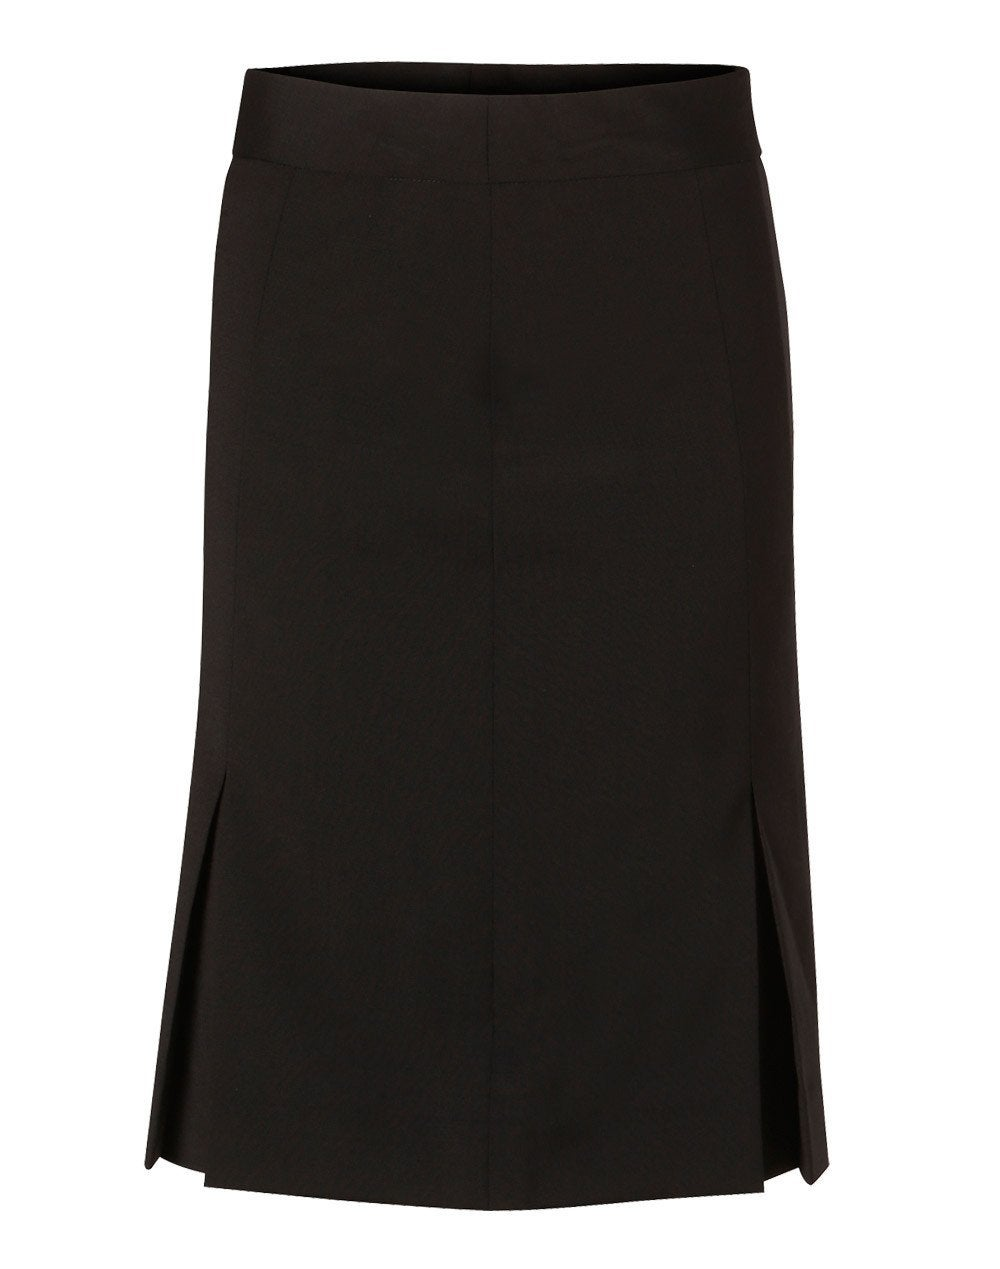 Women's Wool Blend Stretch Pleated Skirt